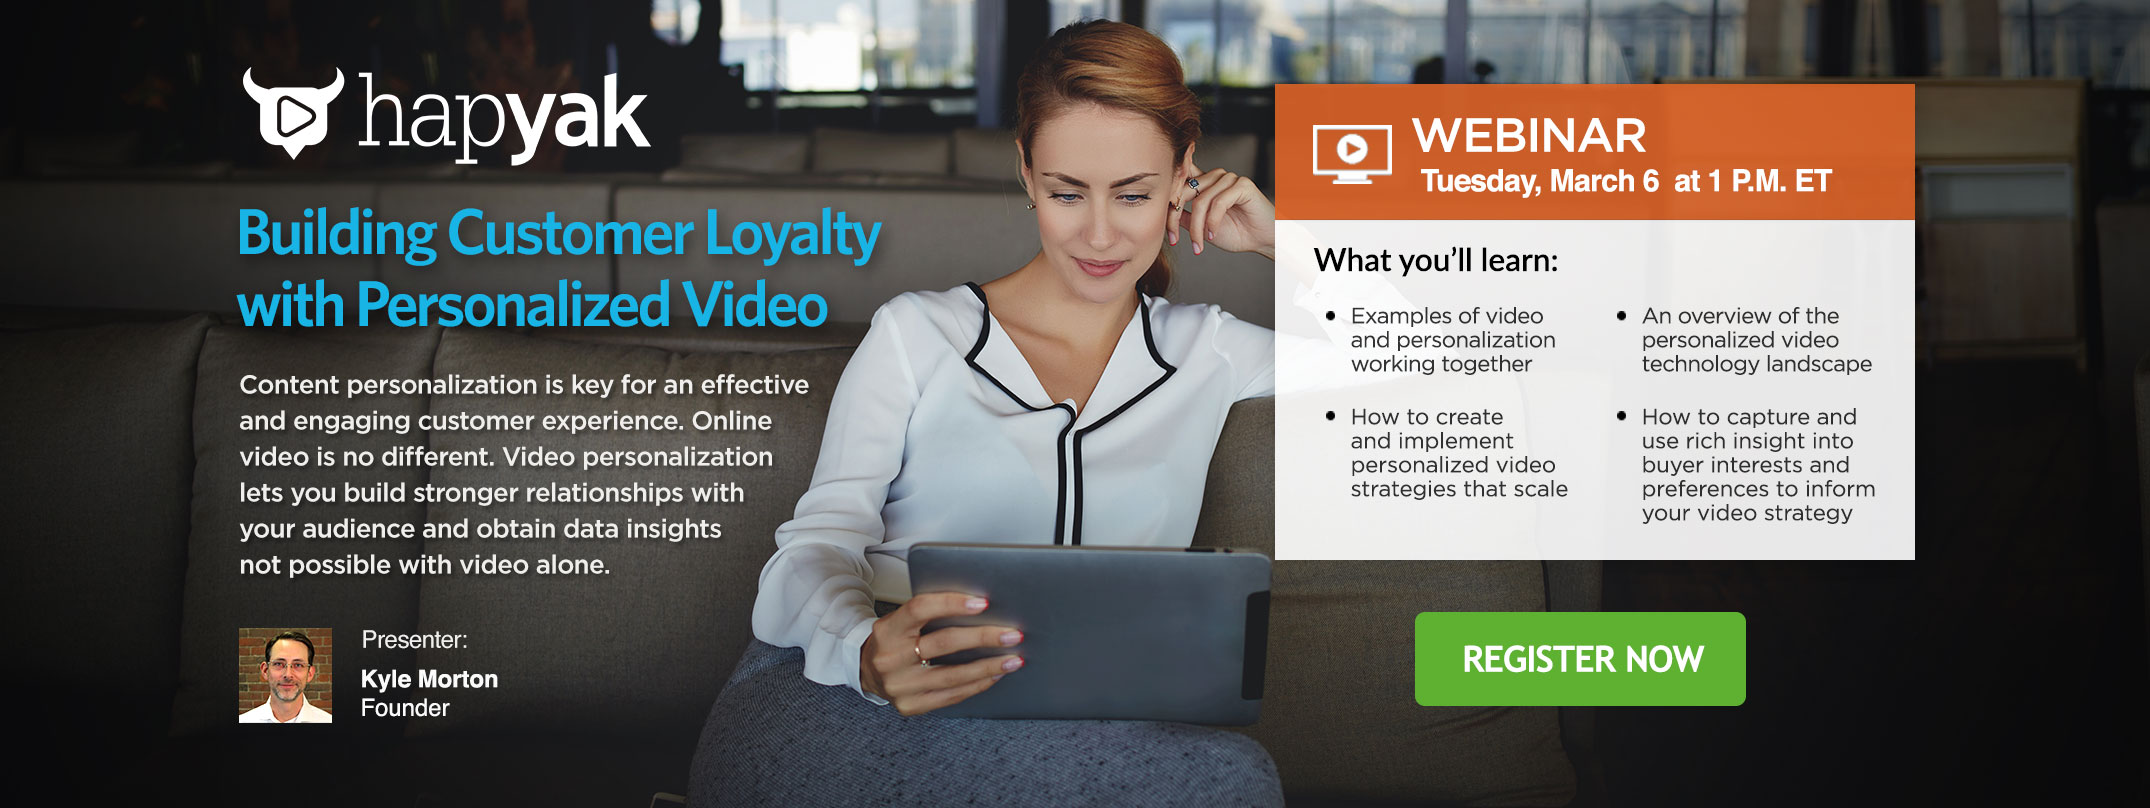 HapYak Webinar on Building Customer Loyalty with Personalized Video